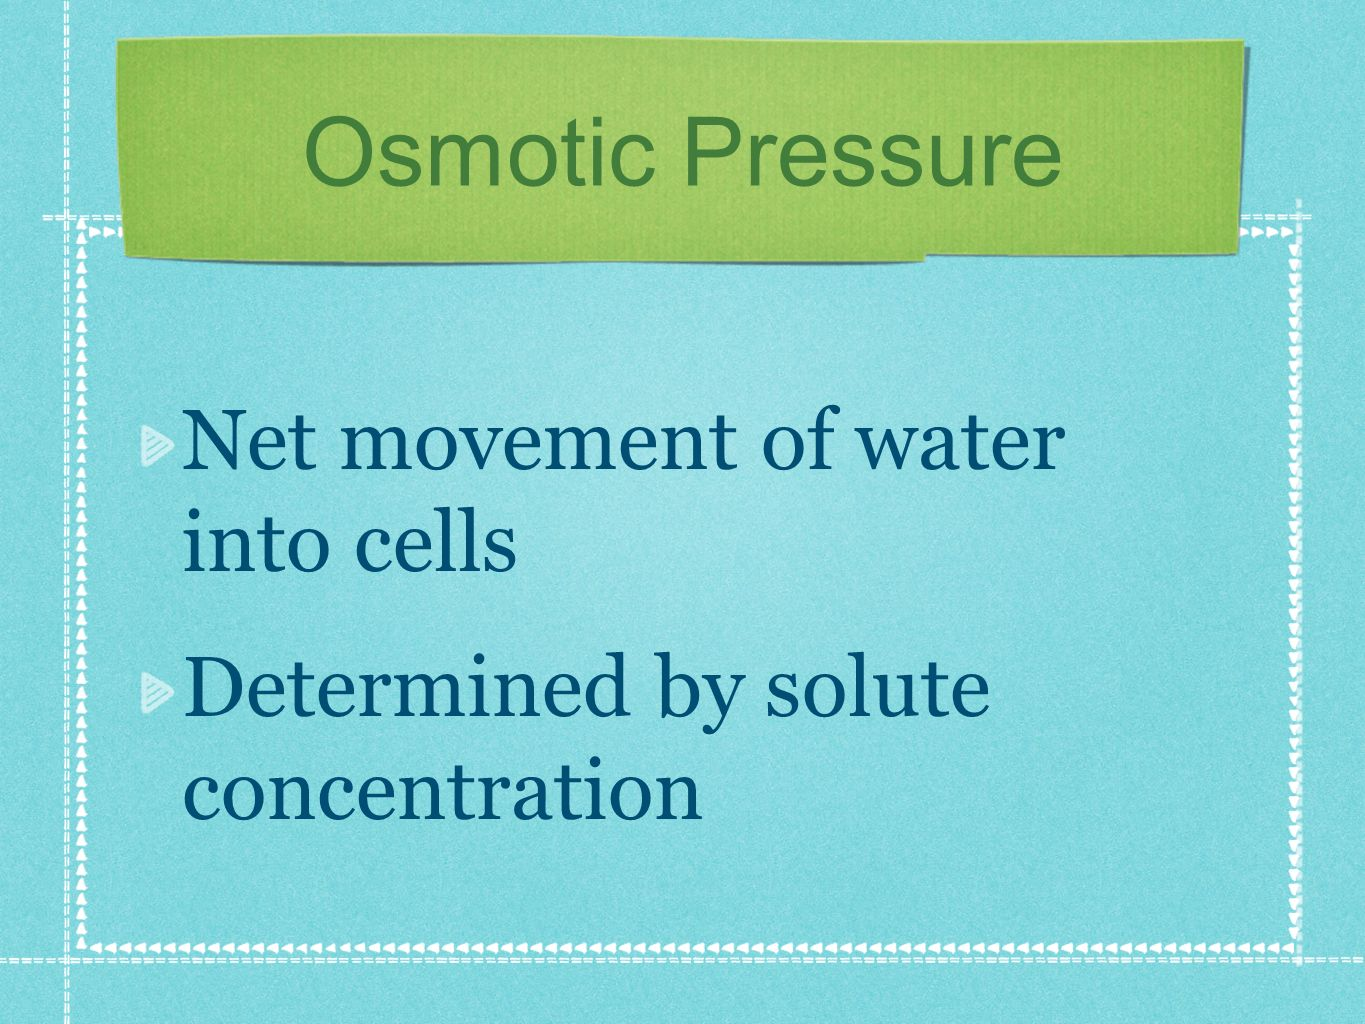 Osmotic Pressure Net movement of water into cells